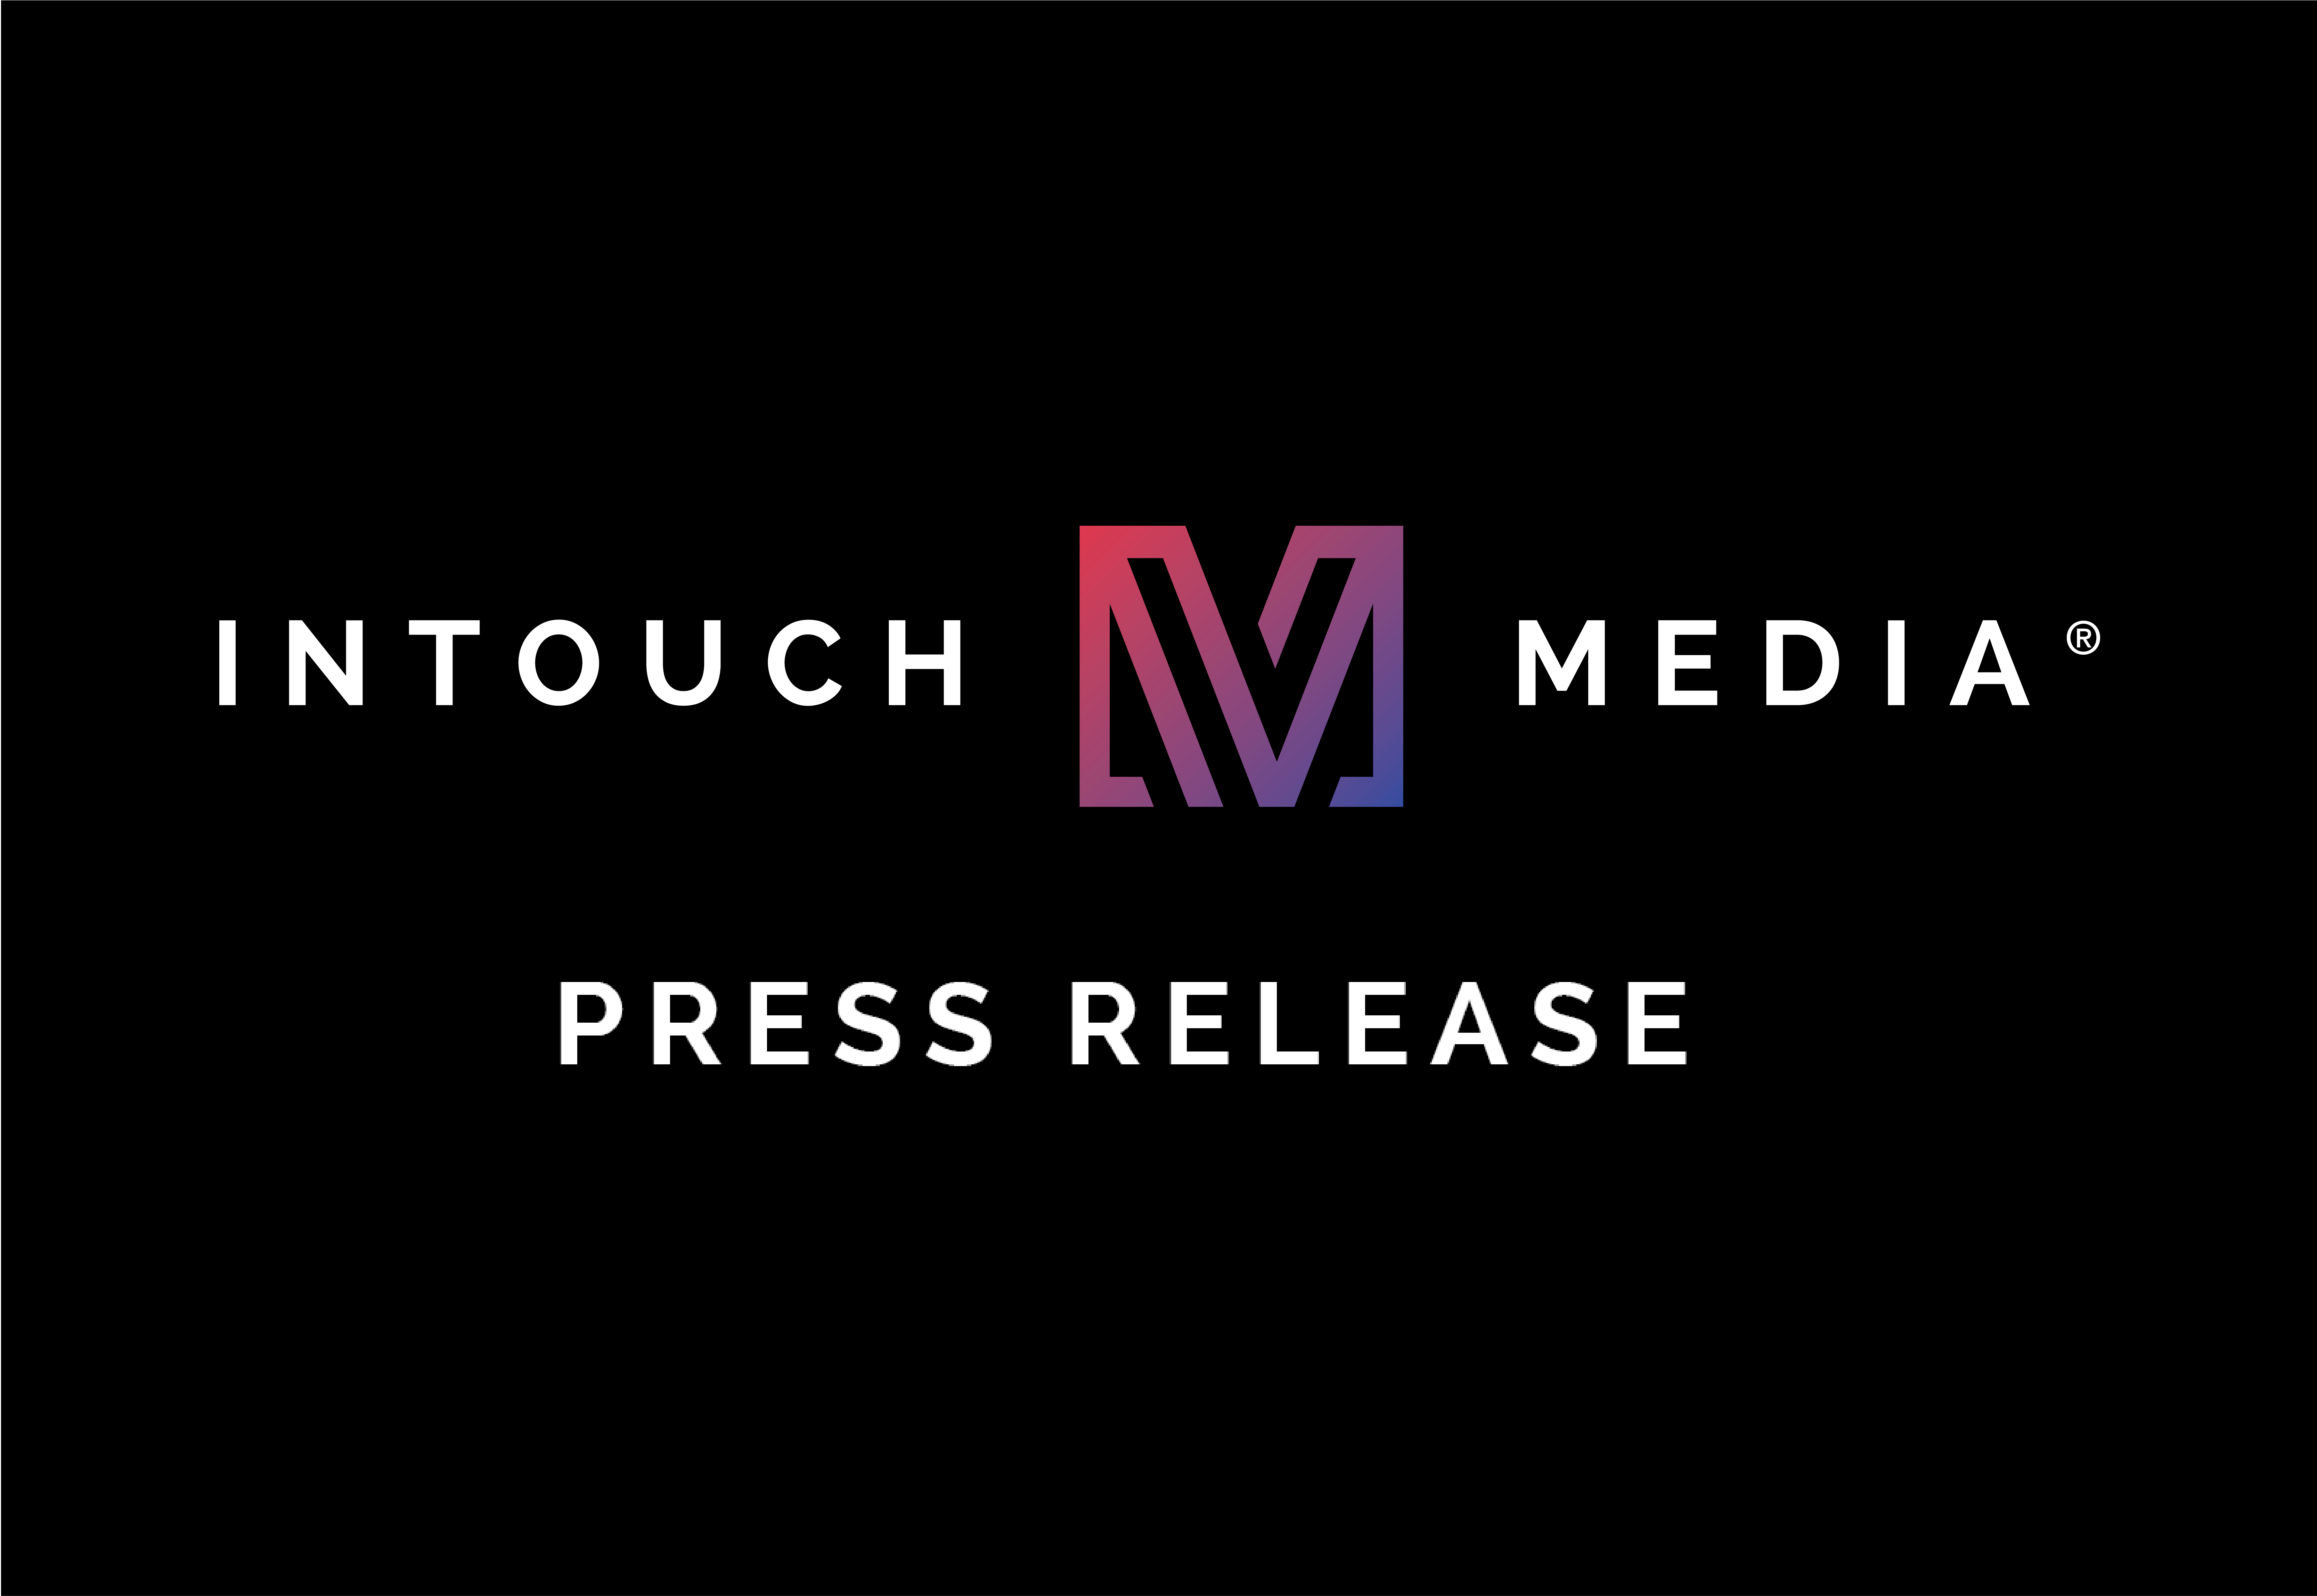 intouch media press release